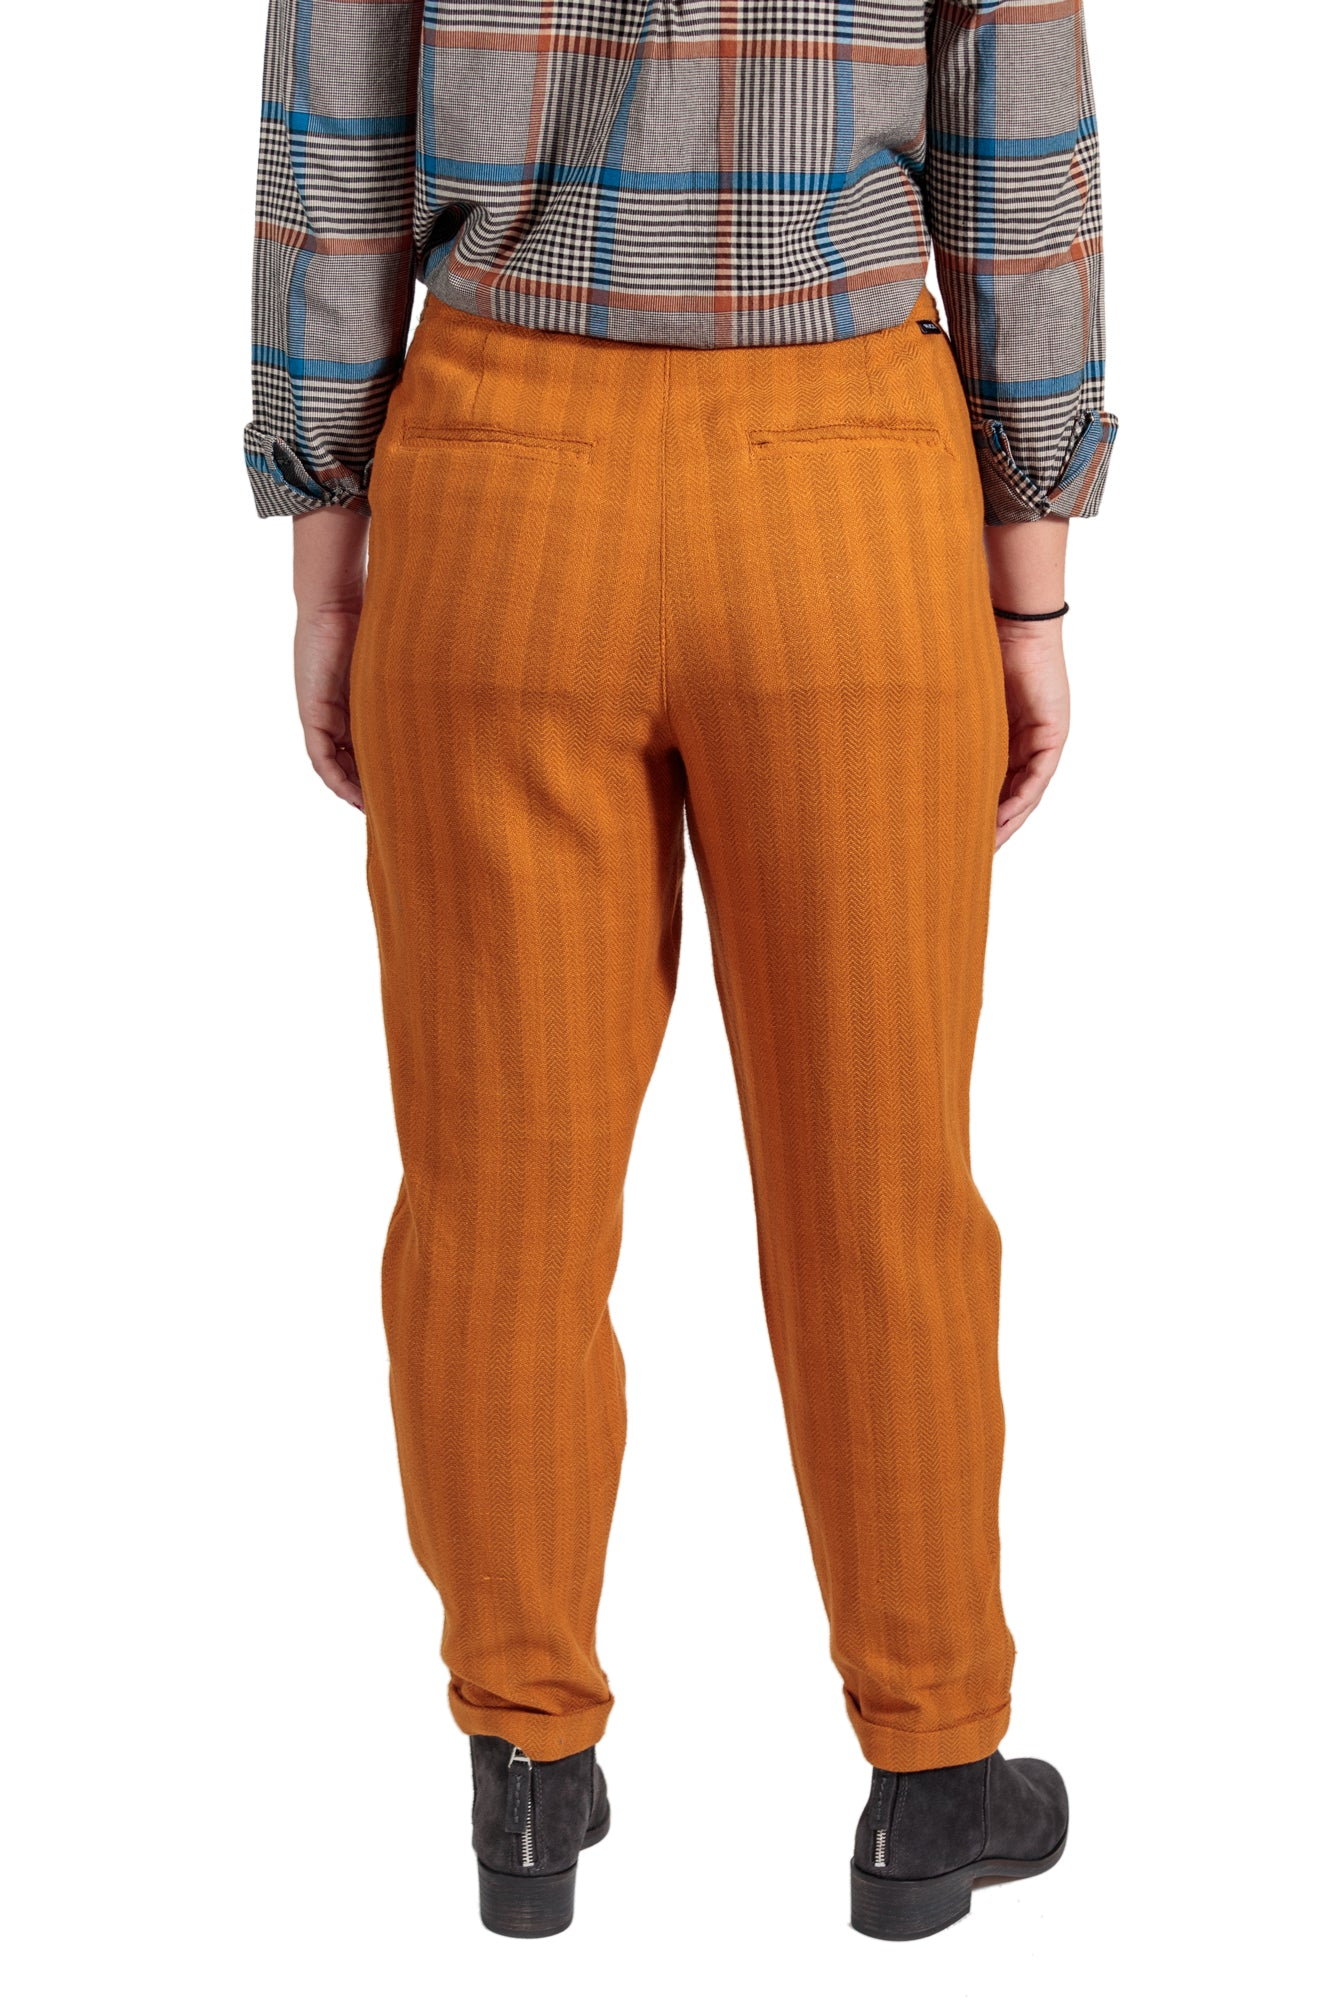 RVCA Scout Striped Trousers - Cathay Spice